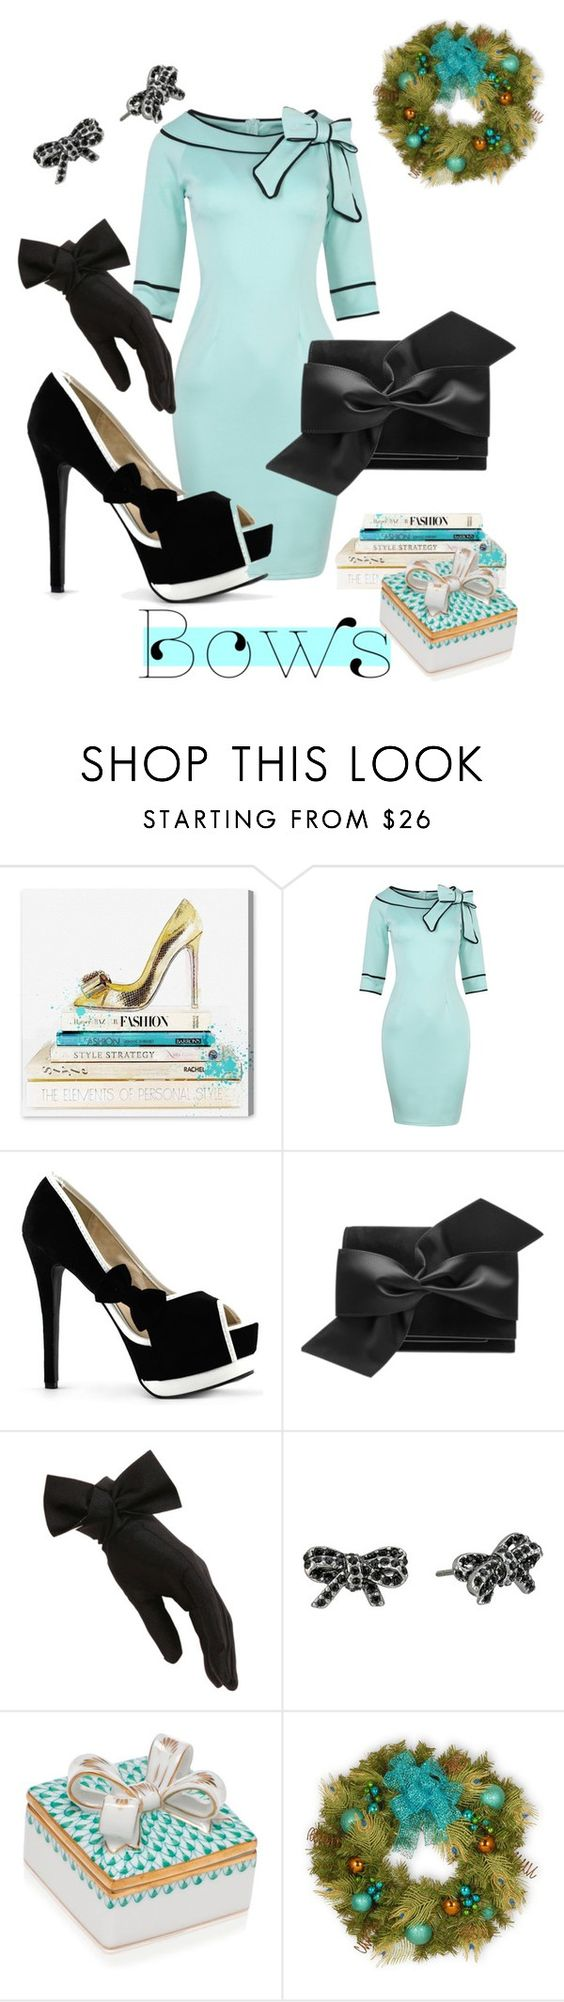 """""""Bows at the Holiday Party🎀"""" by mdfletch ❤ liked on Polyvore featuring Oliver Gal Artist Co., Victoria Beckham, Black, Marc Jacobs, Herend, National Tree Company and bows"""